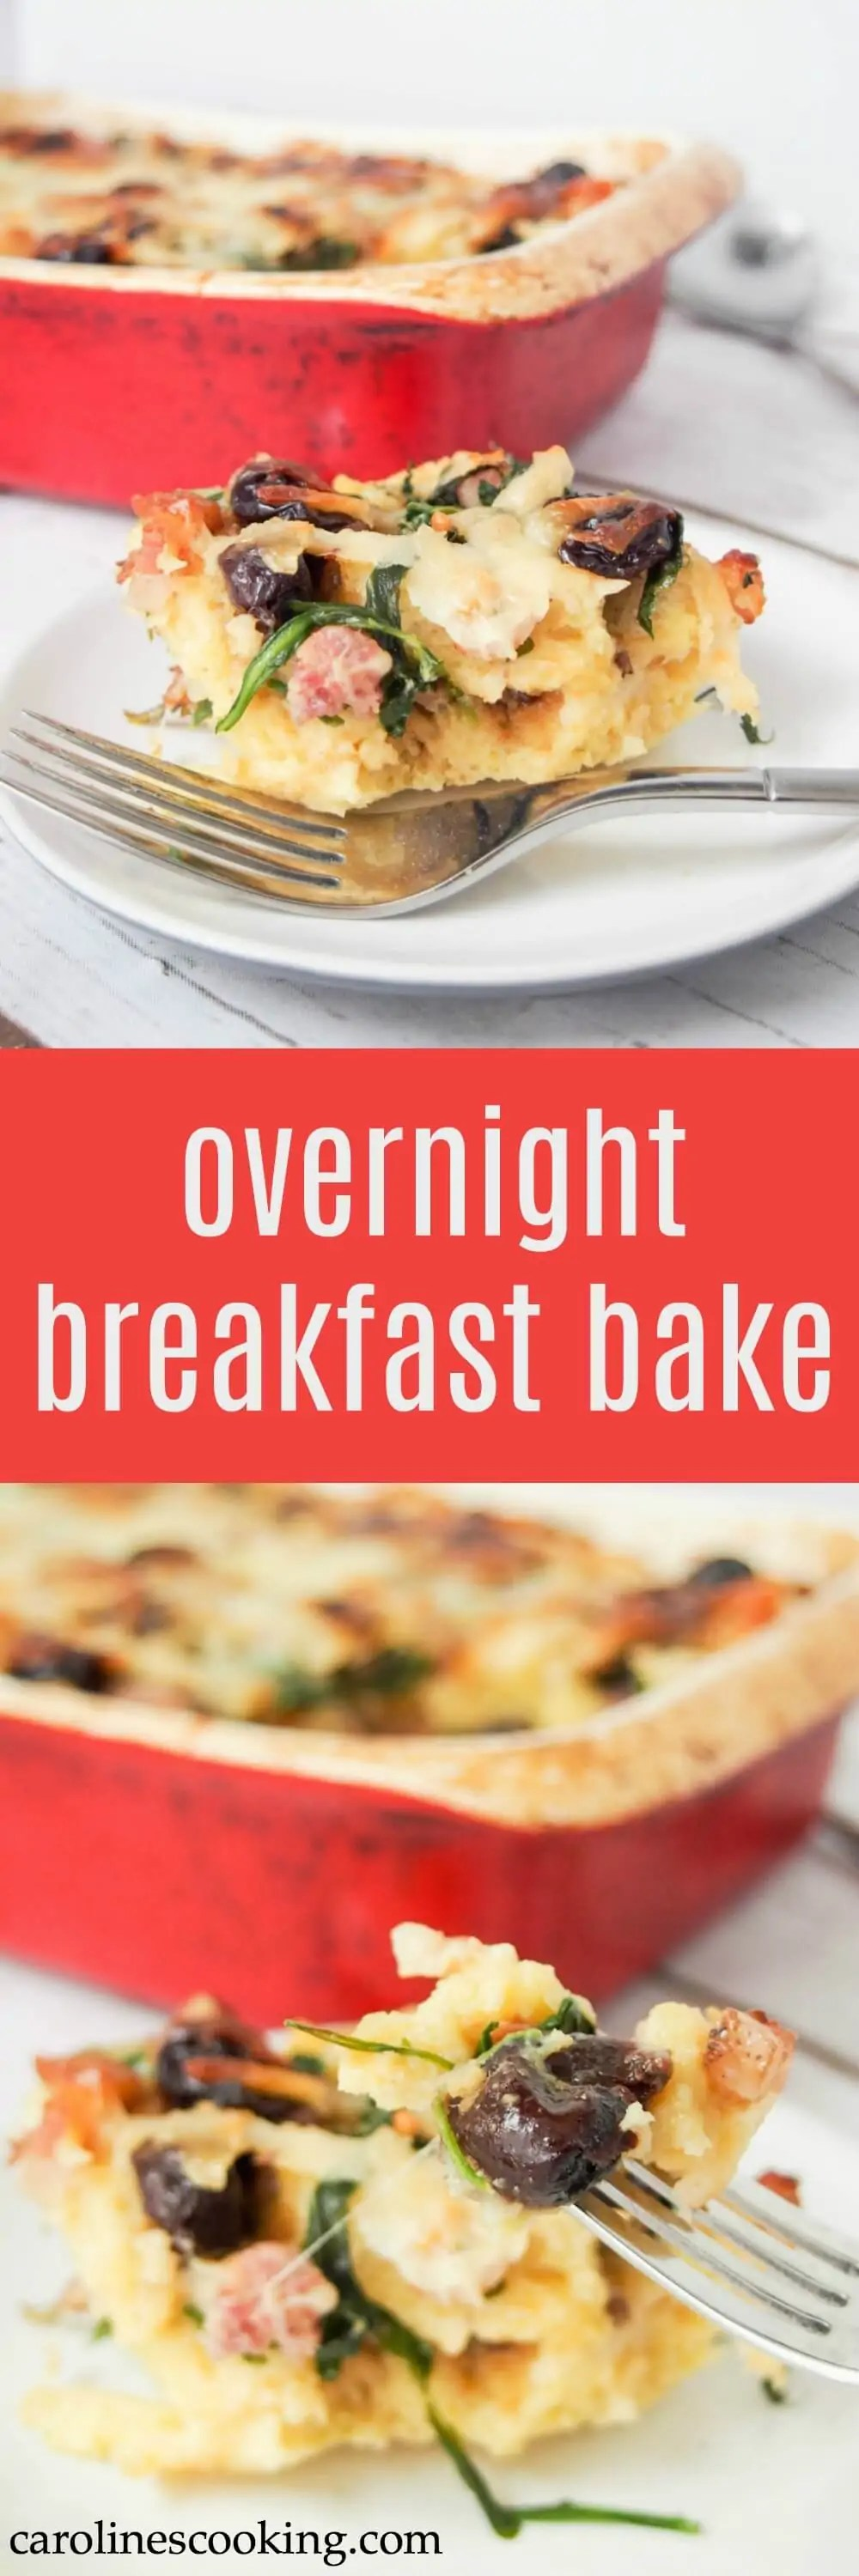 This overnight breakfast bake has delicious bursts of flavor from dried cherries, pancetta and parmesan. An easy prep the night before, then bake it up and serve in the morning. Everyone will love it!